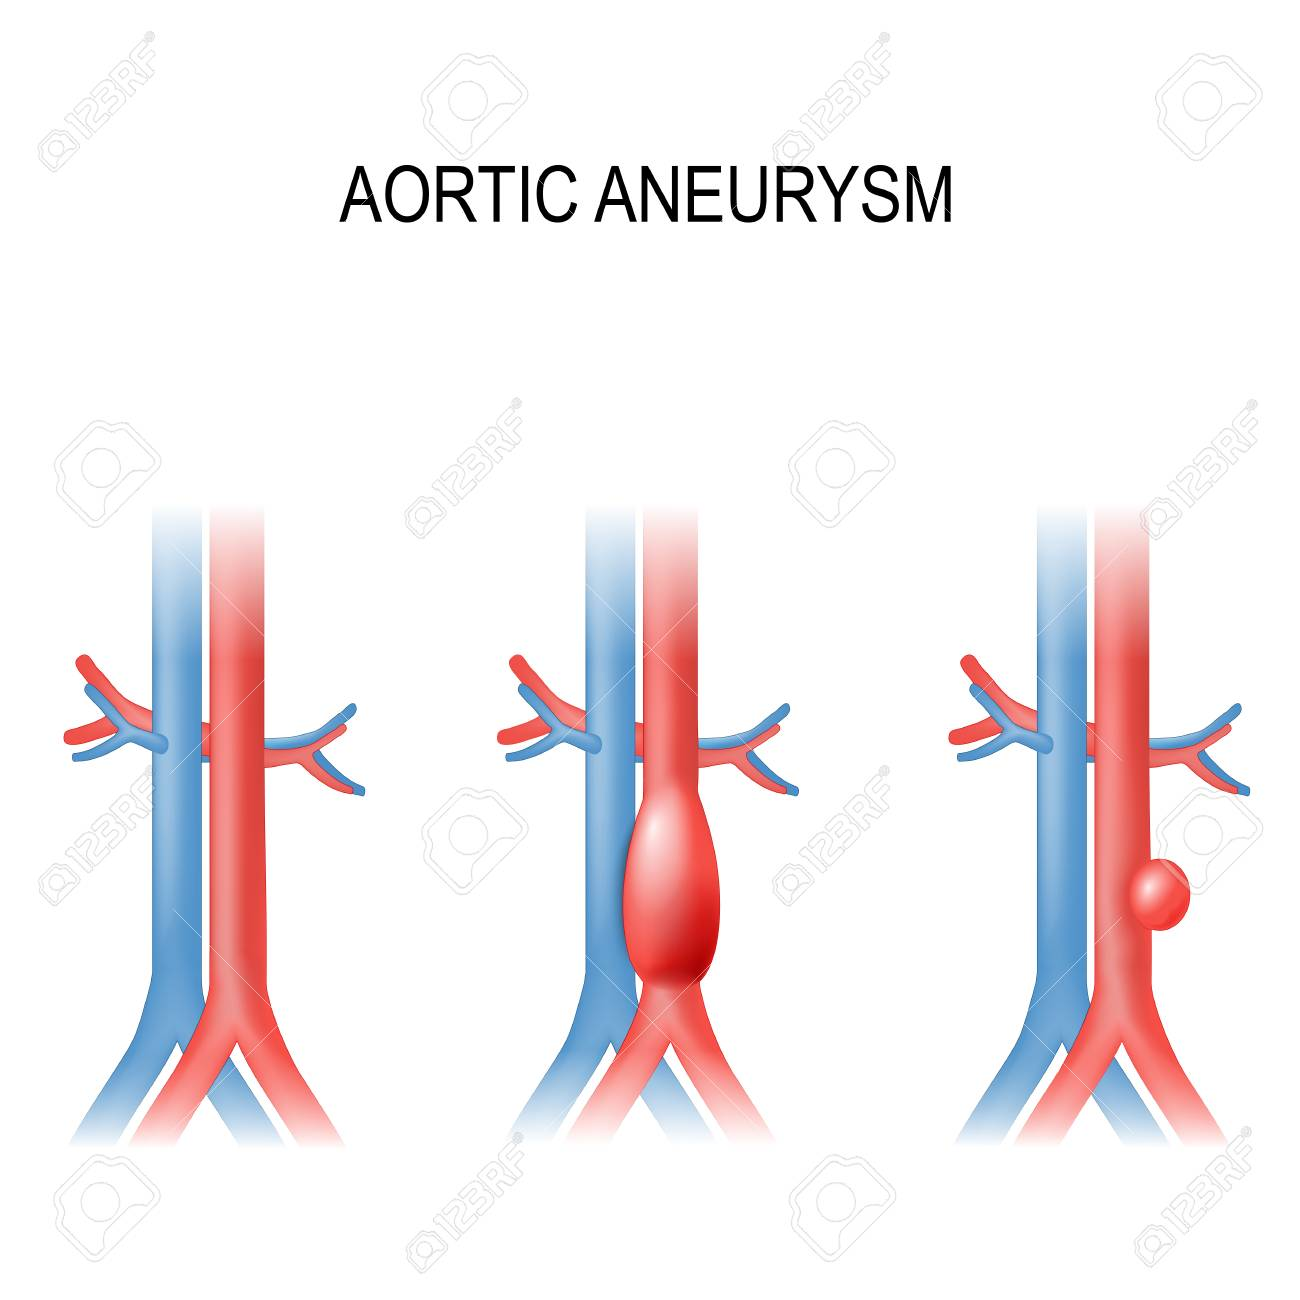 hight resolution of types of abdominal aortic aneurysm normal aorta and enlarged vessels vector diagram